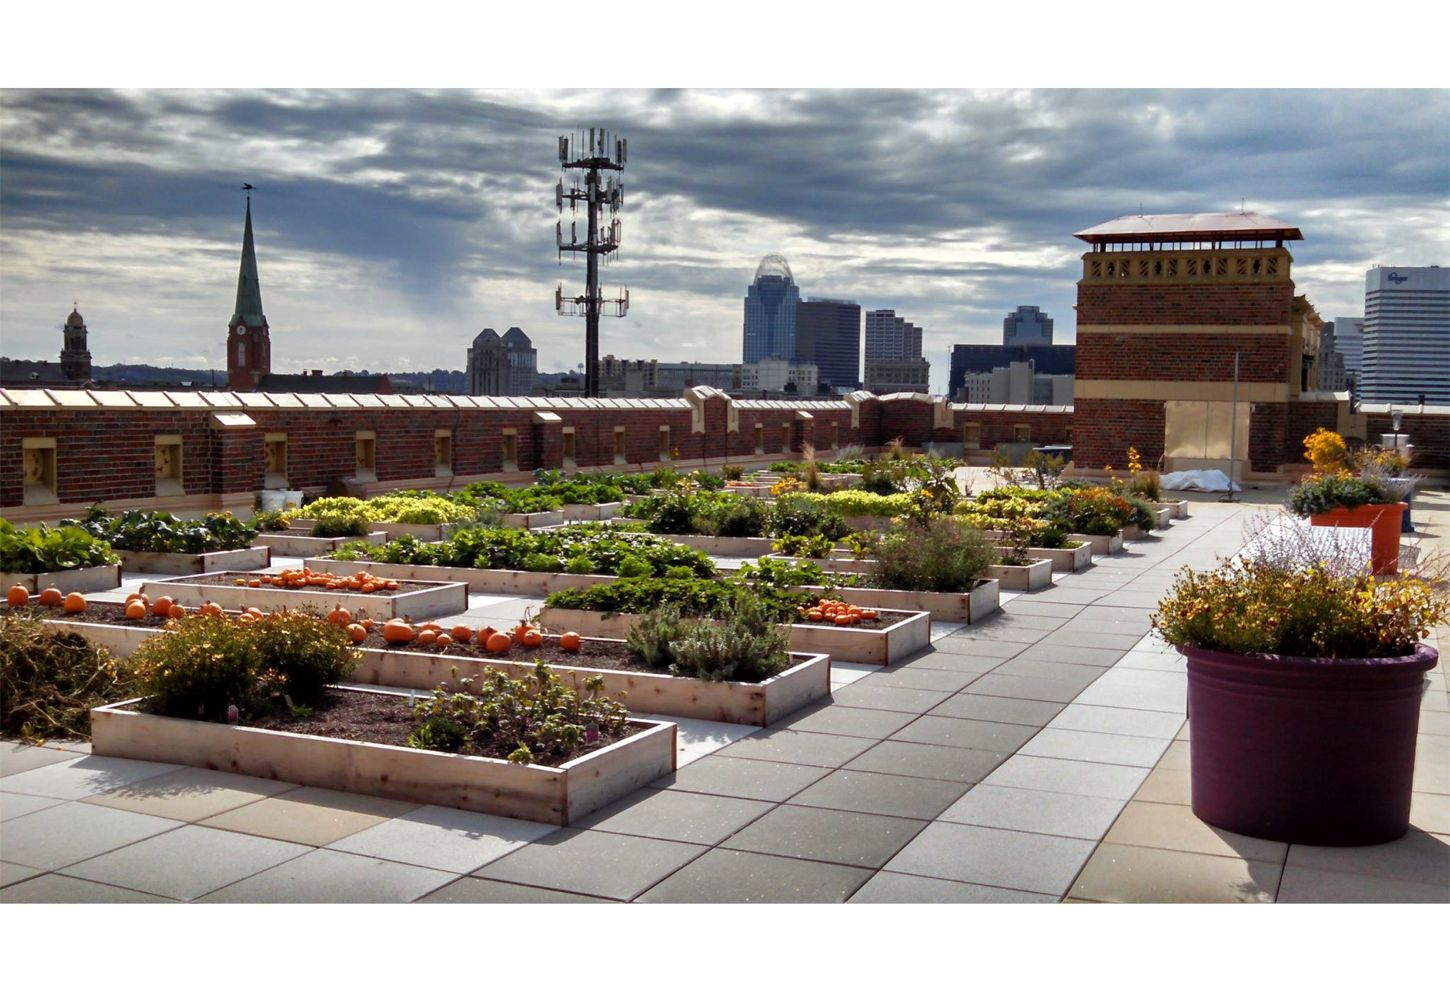 Rothenberg Rooftop Garden - Greenroofs com